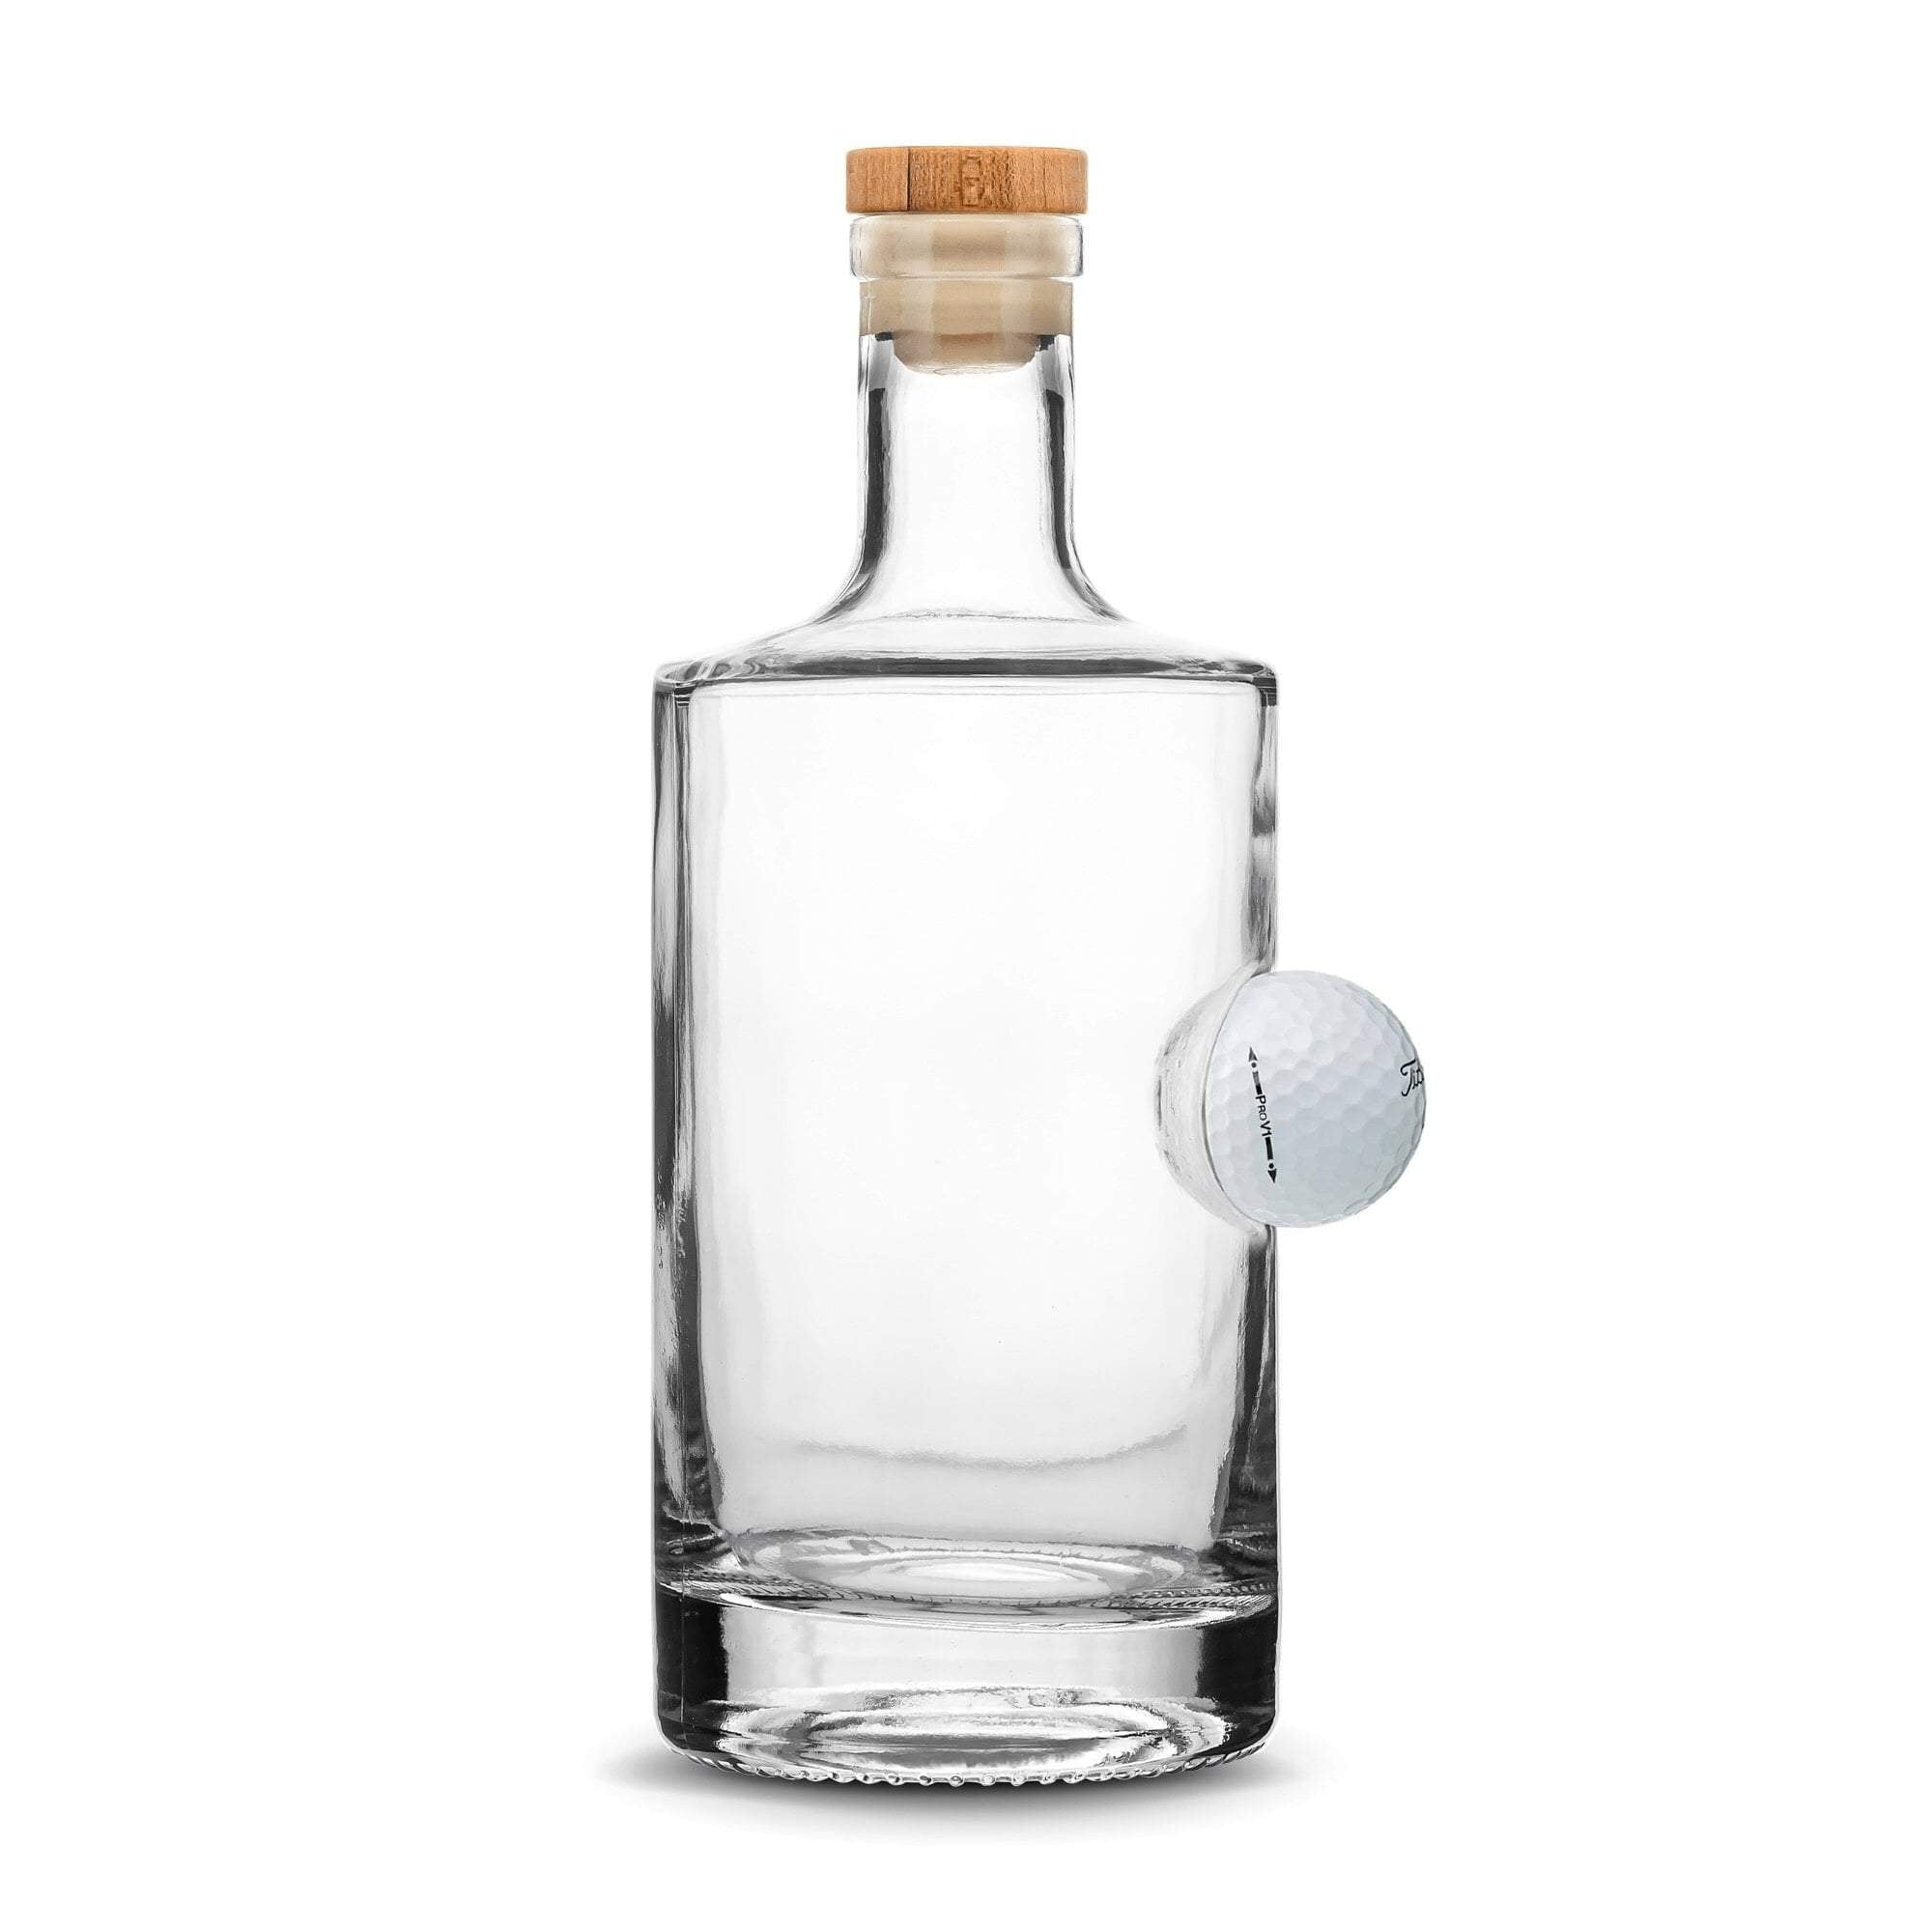 Jersey Liquor Bottle, Golf Ball, 750 mL Integrity Bottles